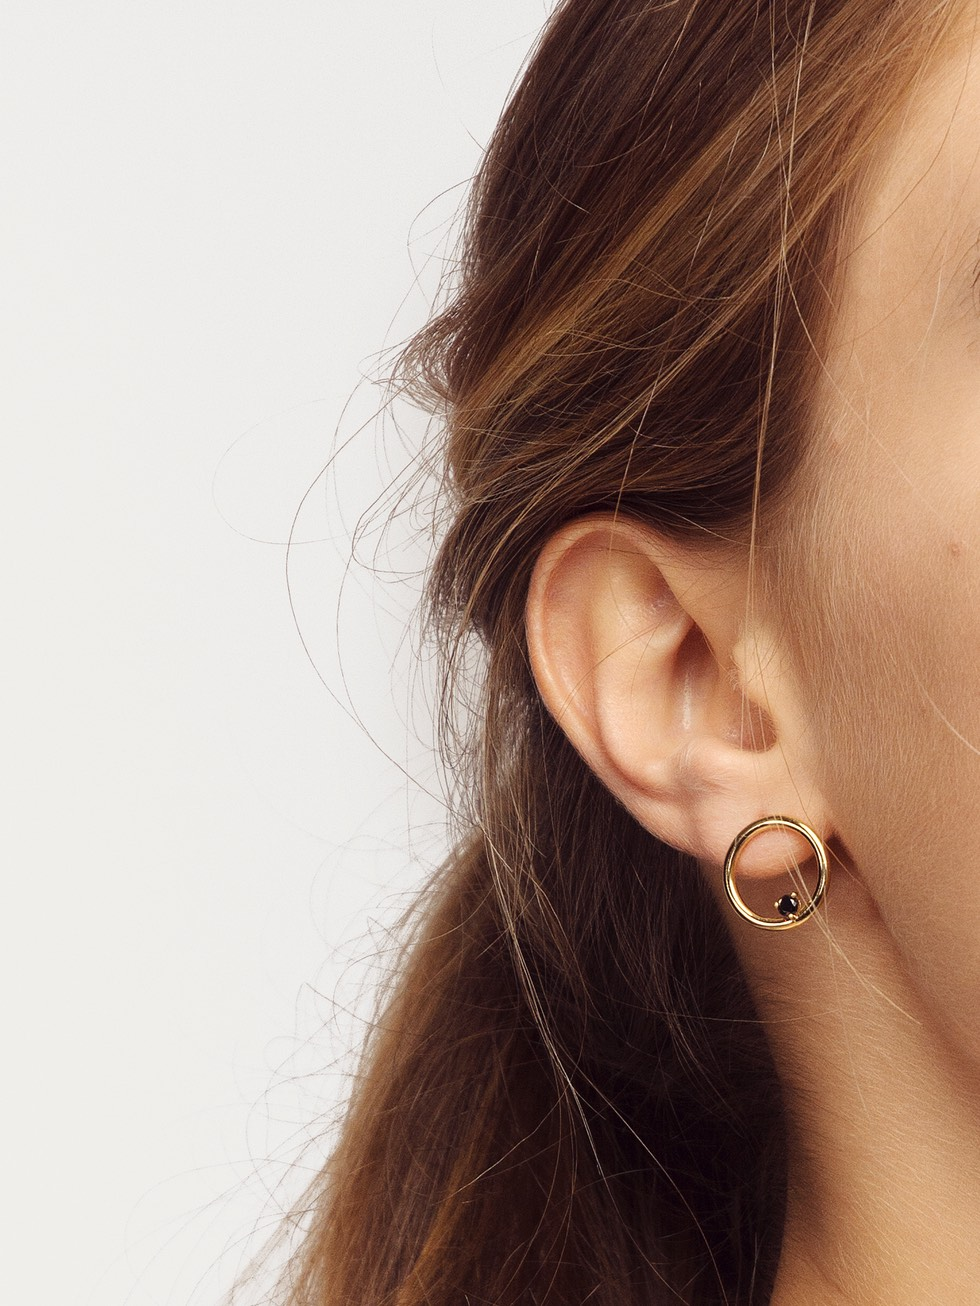 NUIT gold earrings